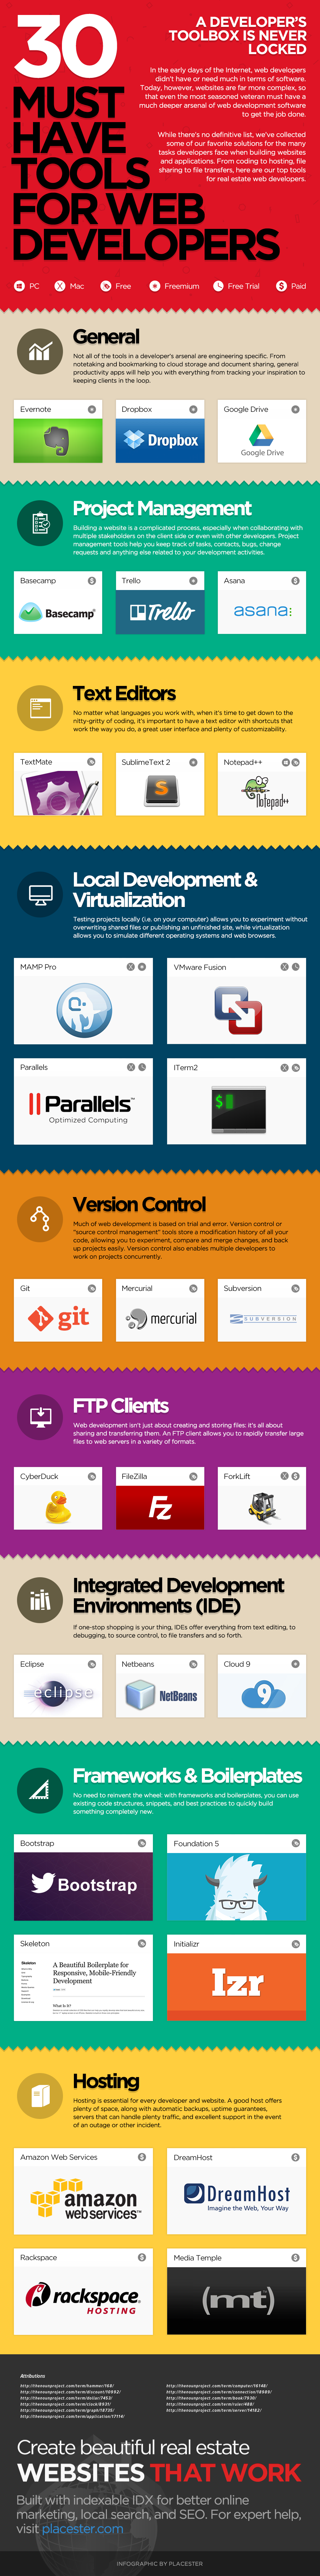 30 Must Have Tools For Web Developers Web Design And Development Infographic By Placester Web Development Design Web Design Web Design Tools